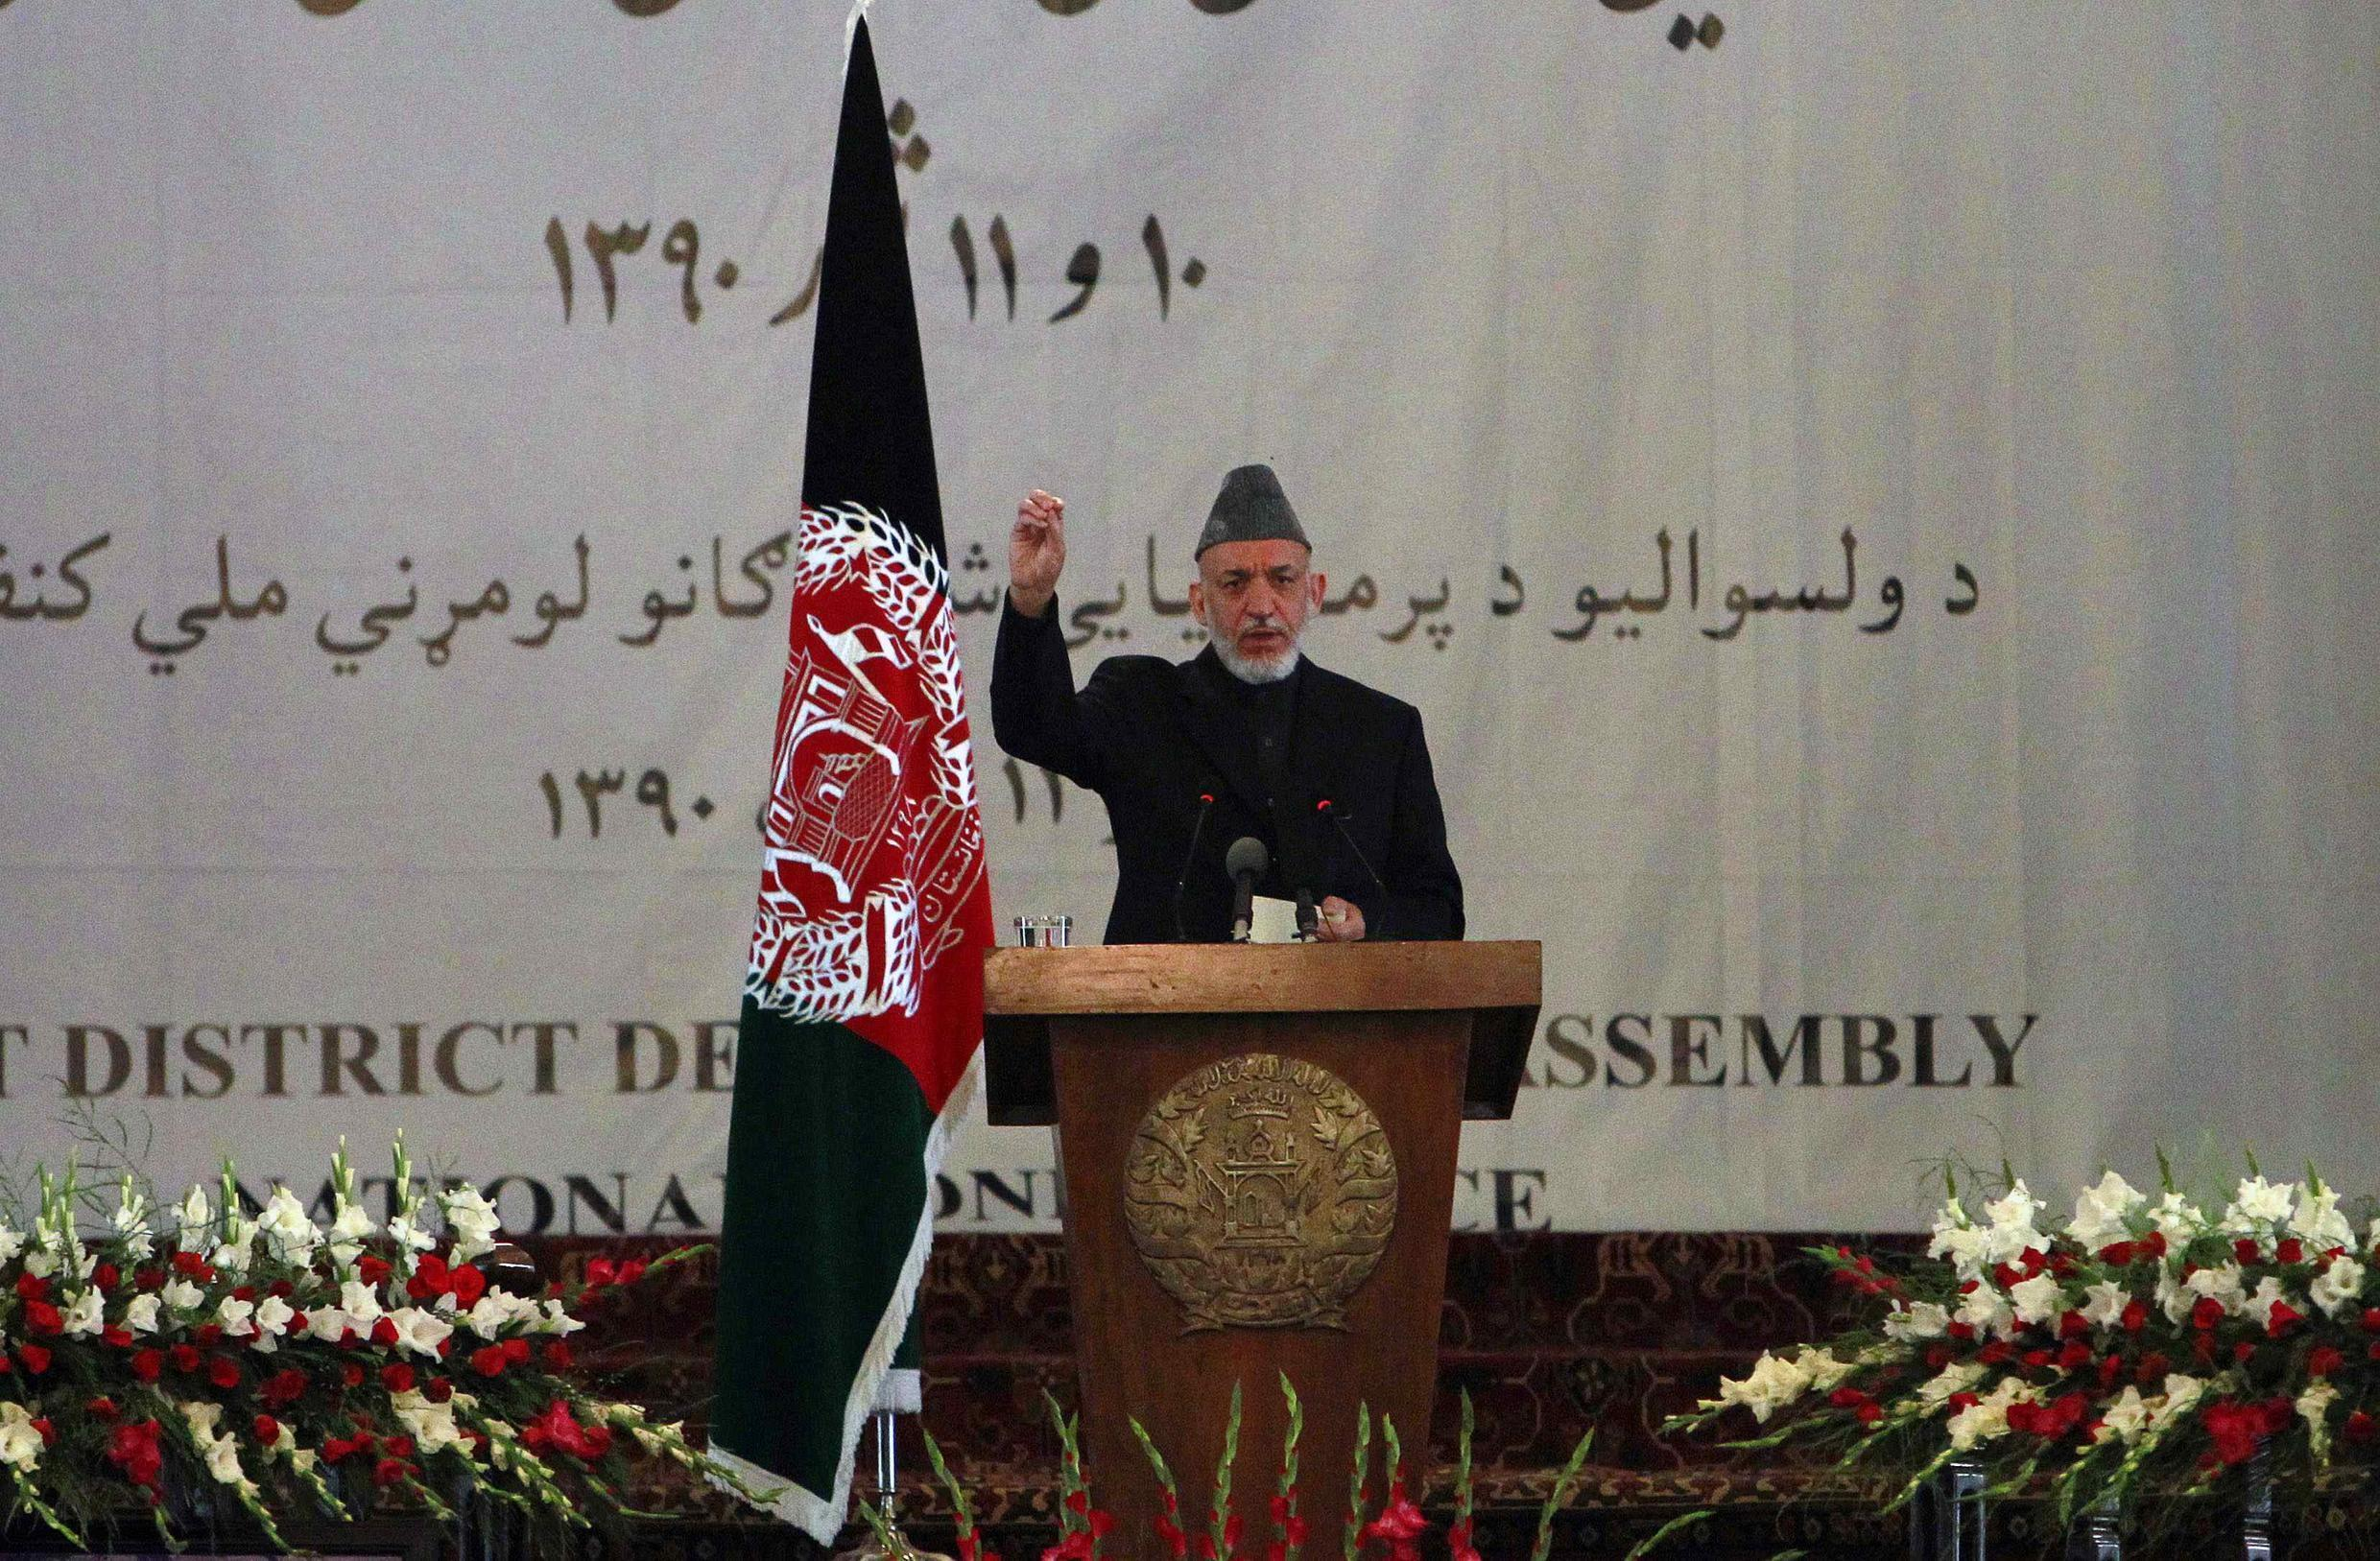 Afghan President Hamid Karzai called on the Taliban not to react violently to bin Laden's death